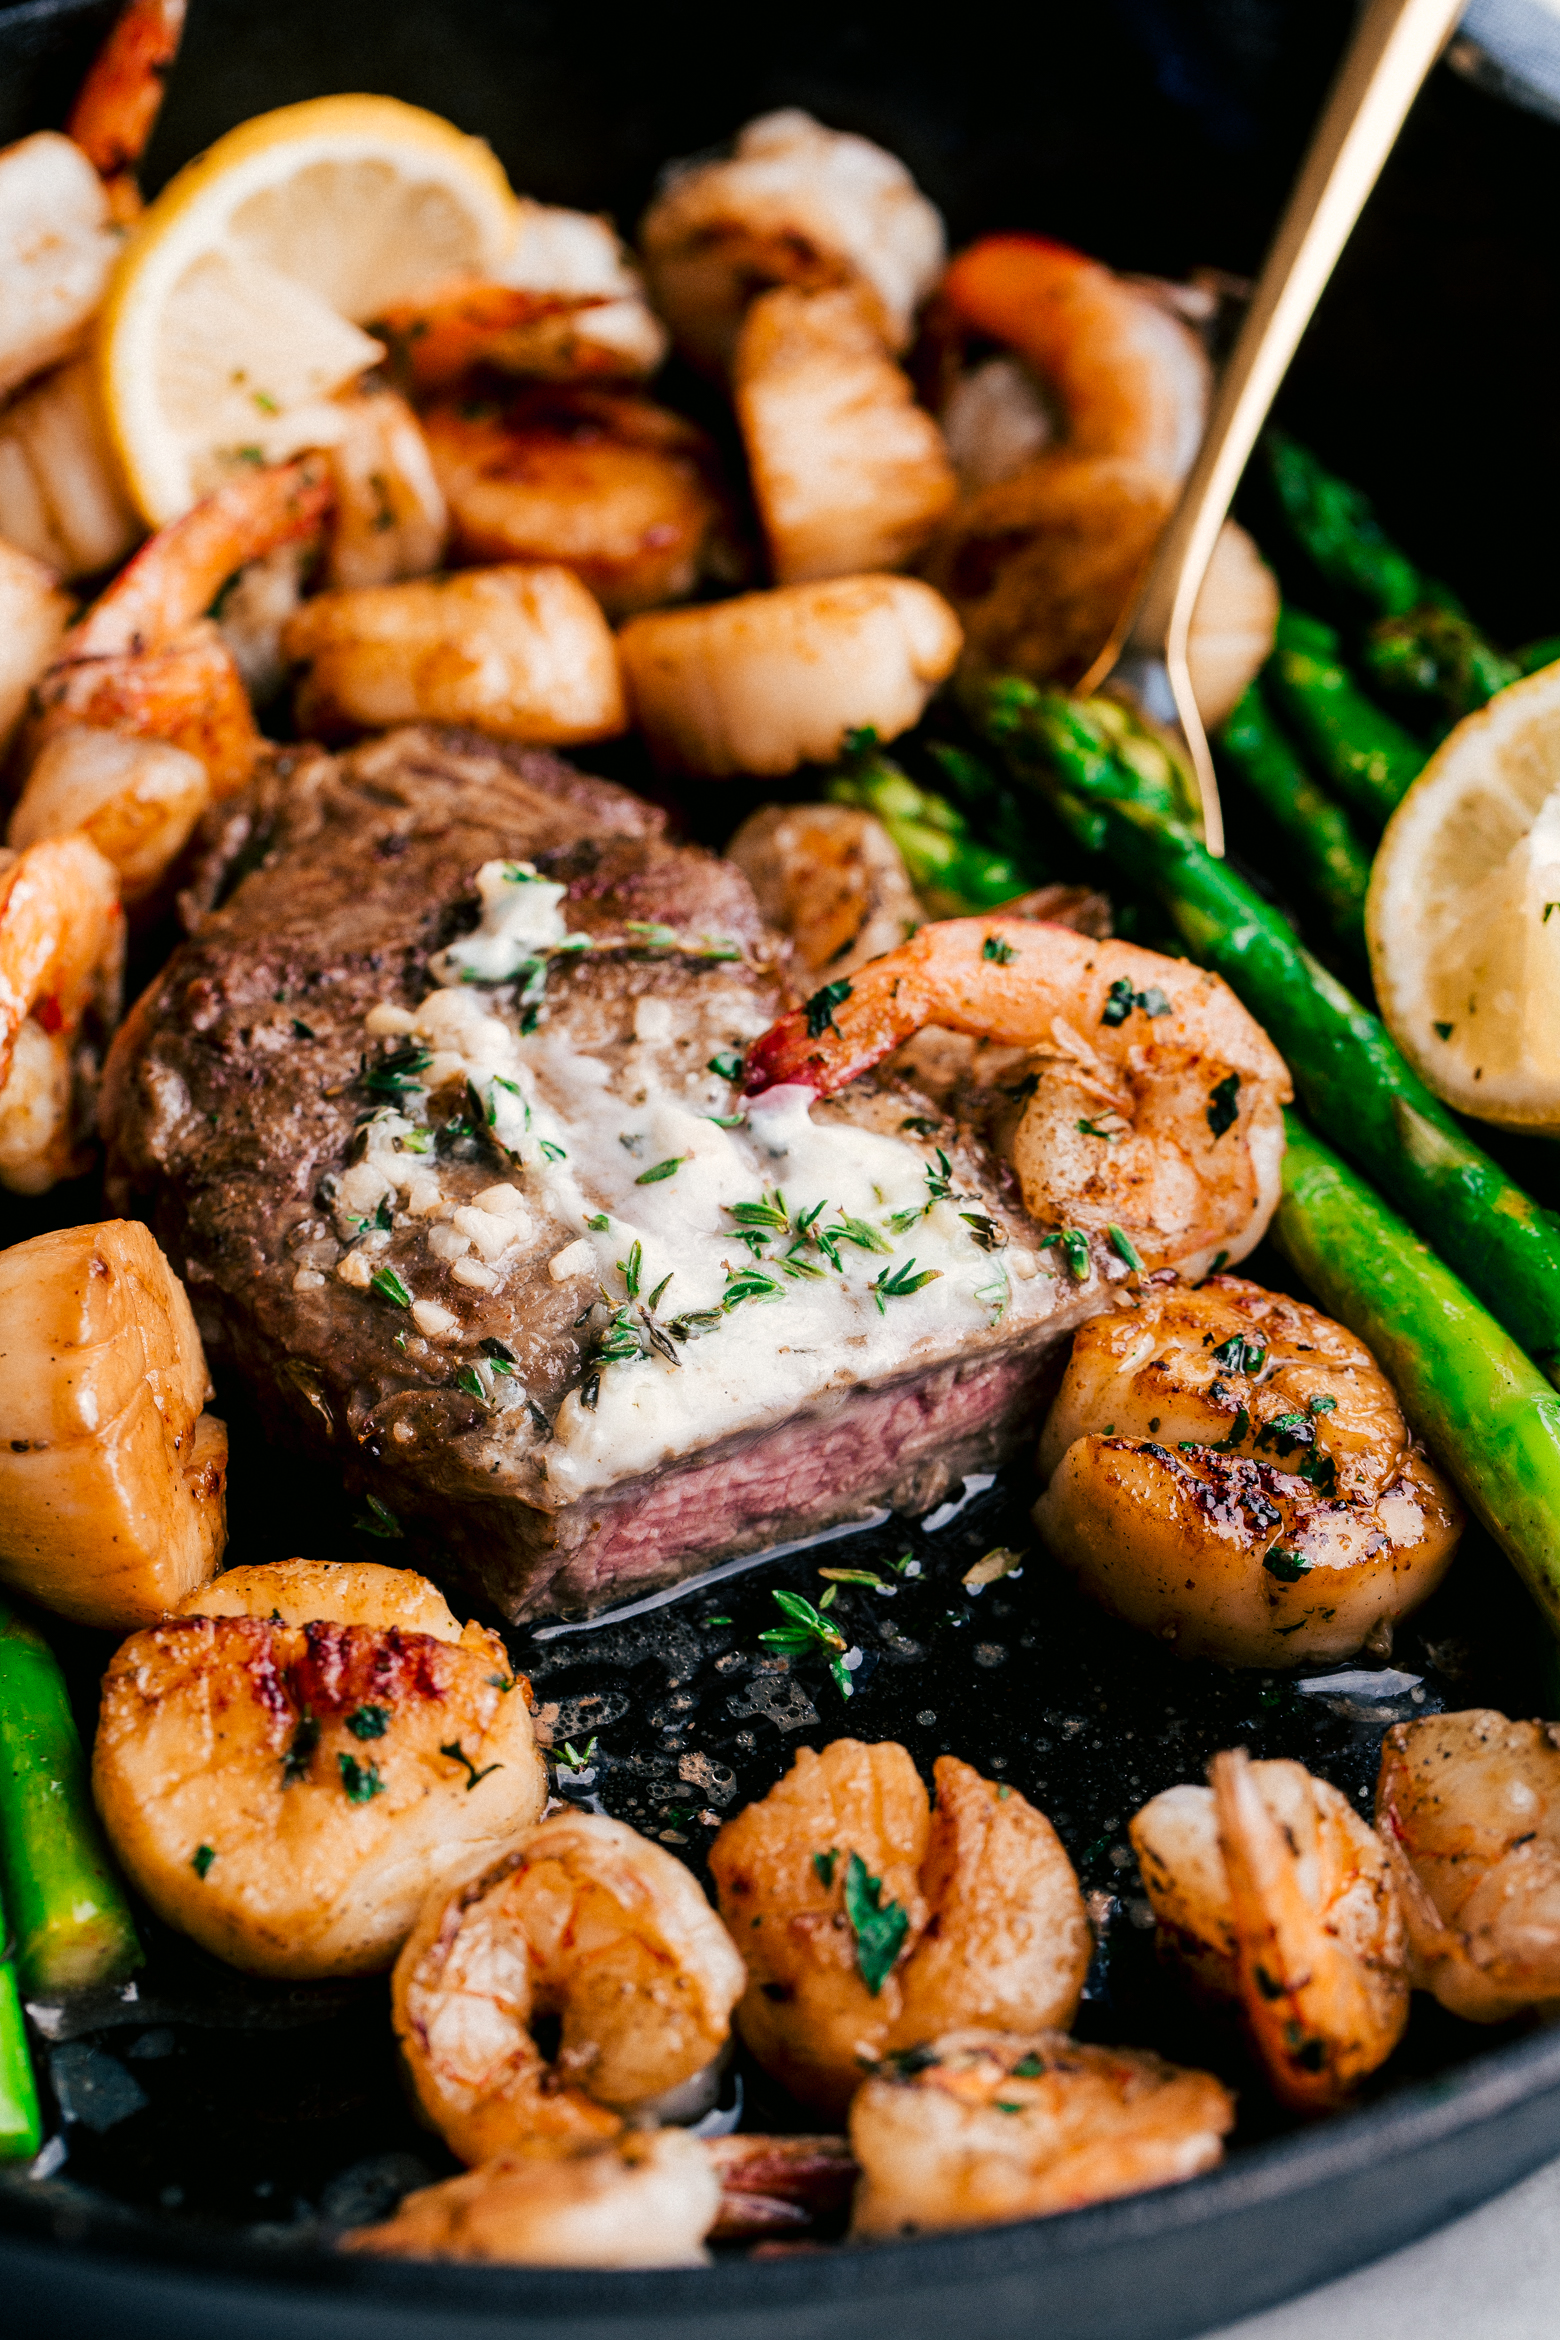 surf and turf made in a one pot with tender steak and juicy shrimp served with garlic butter and asparagus, by The Food Cafe.